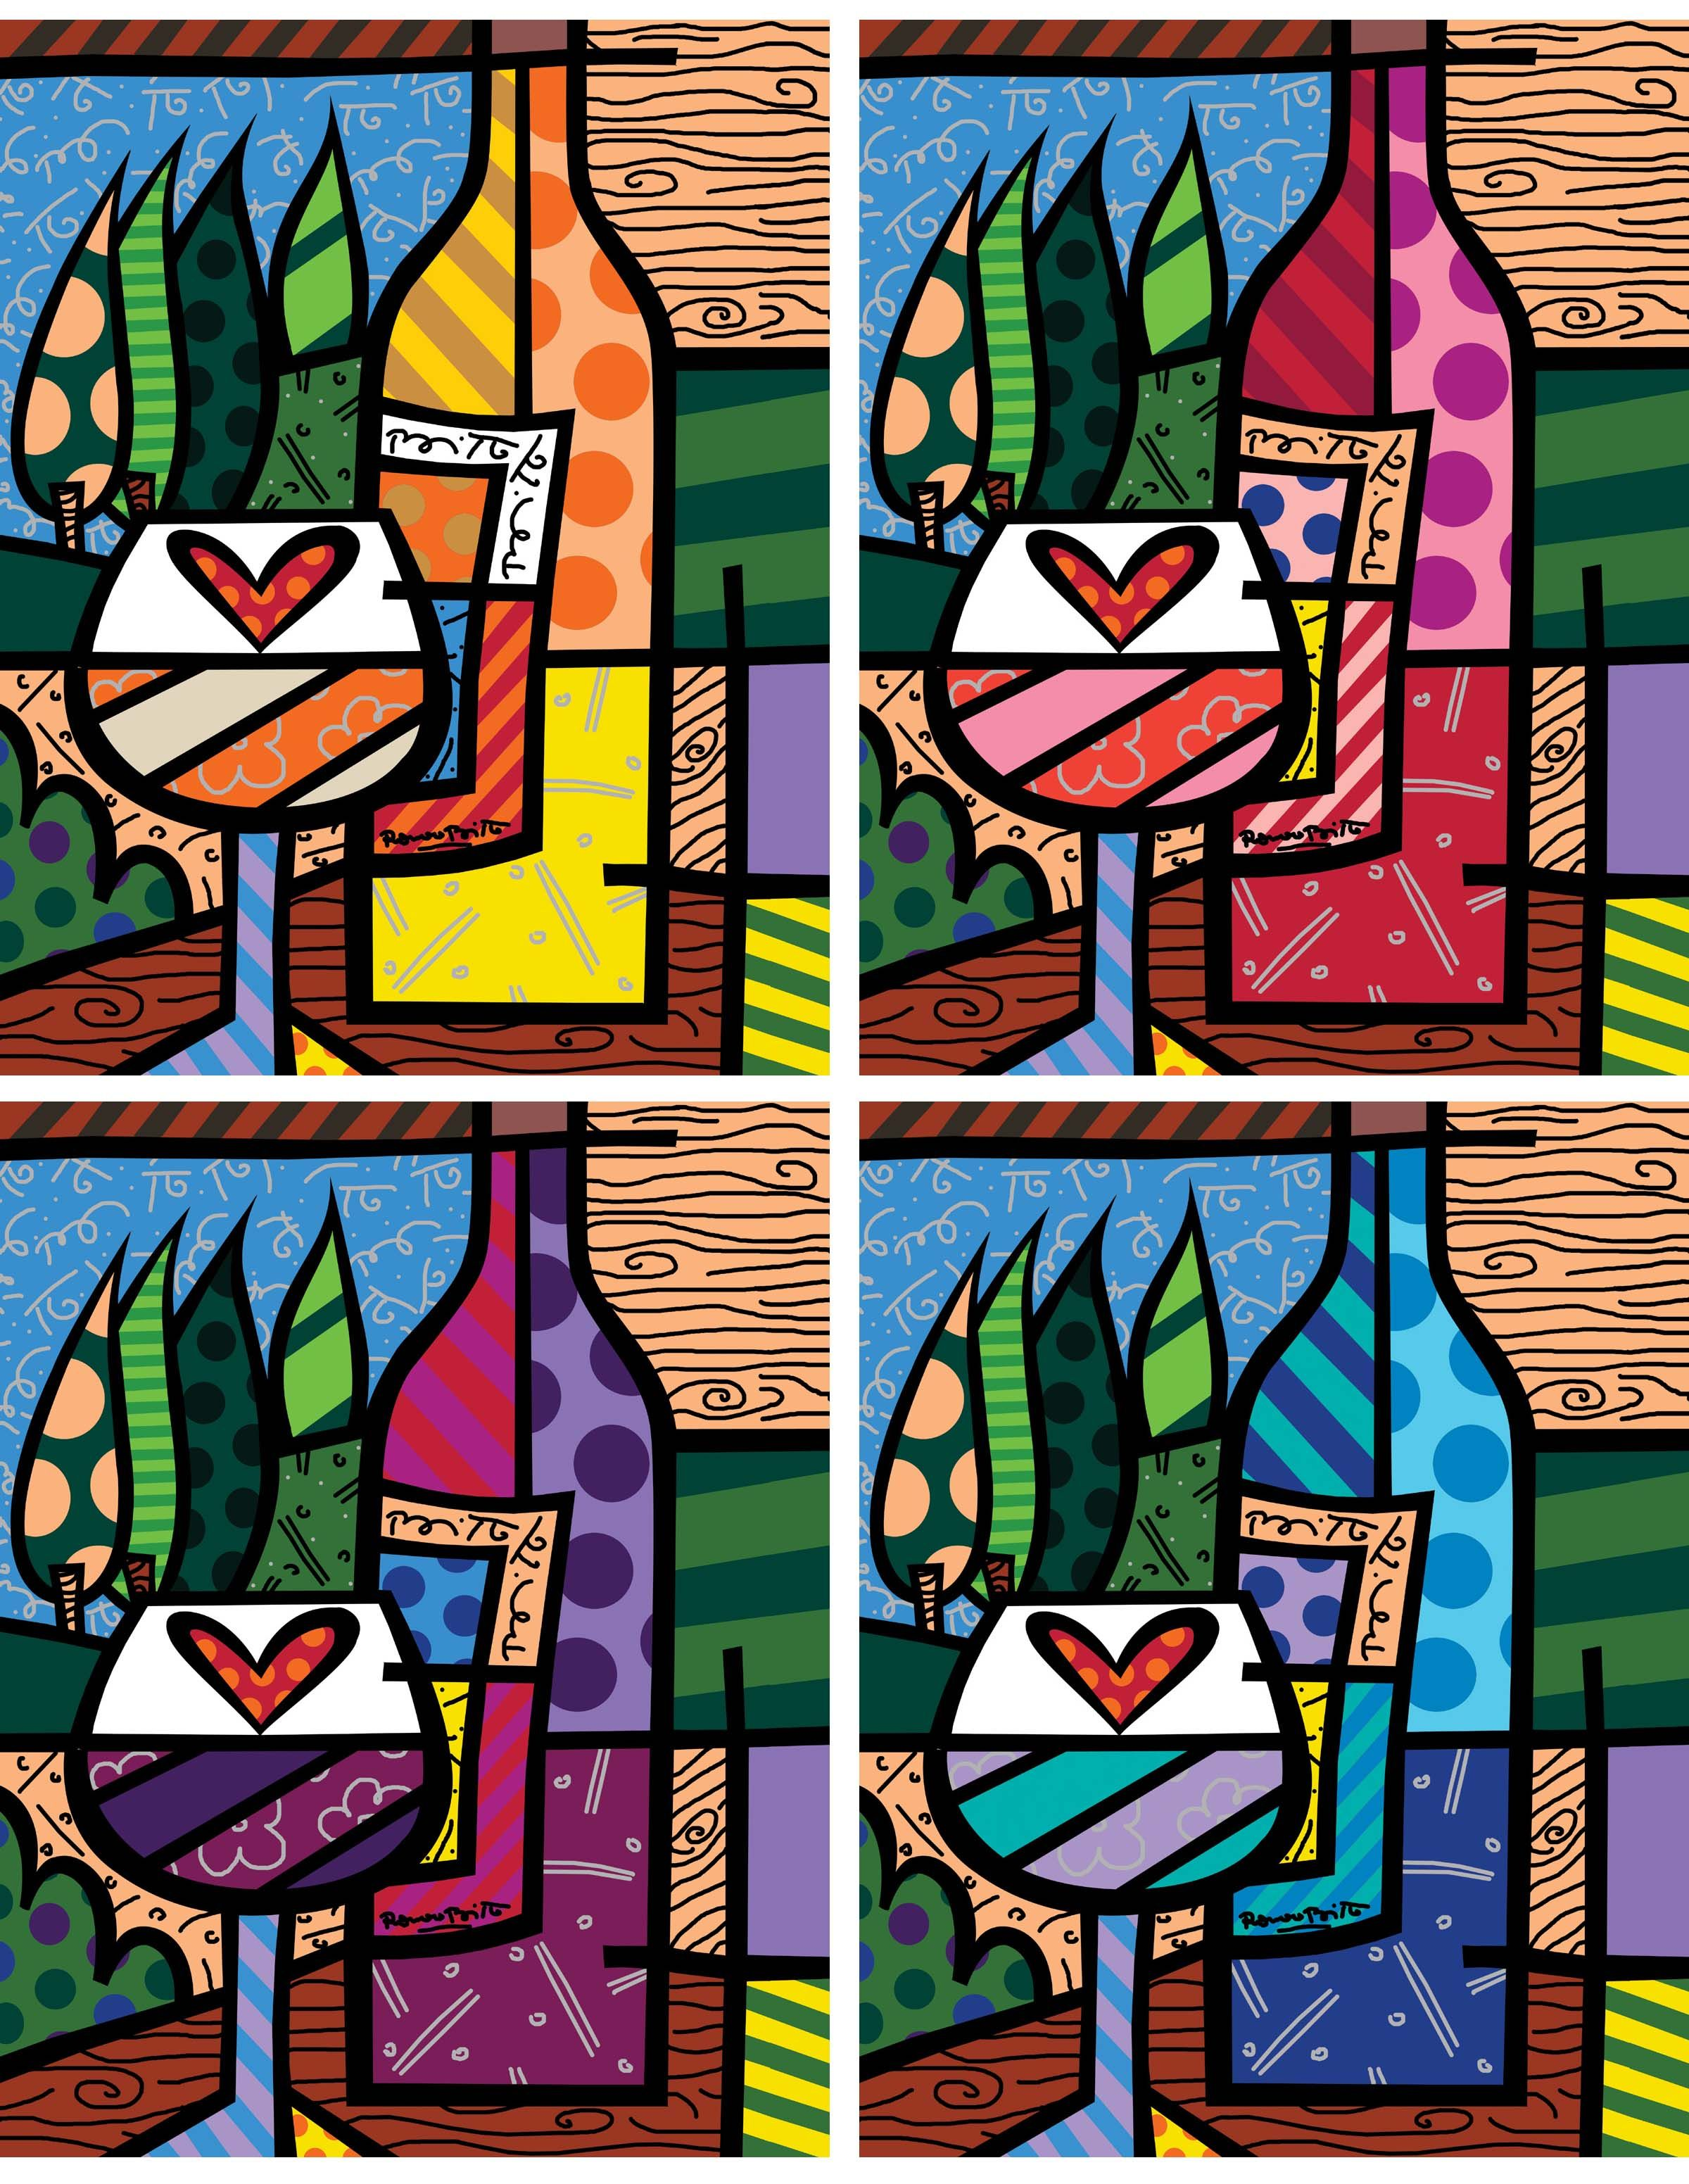 """WINE WINE (2006) Four Color Series, 36"""" x 28"""" Giclee on canvas, hand embellished by Romero Britto."""